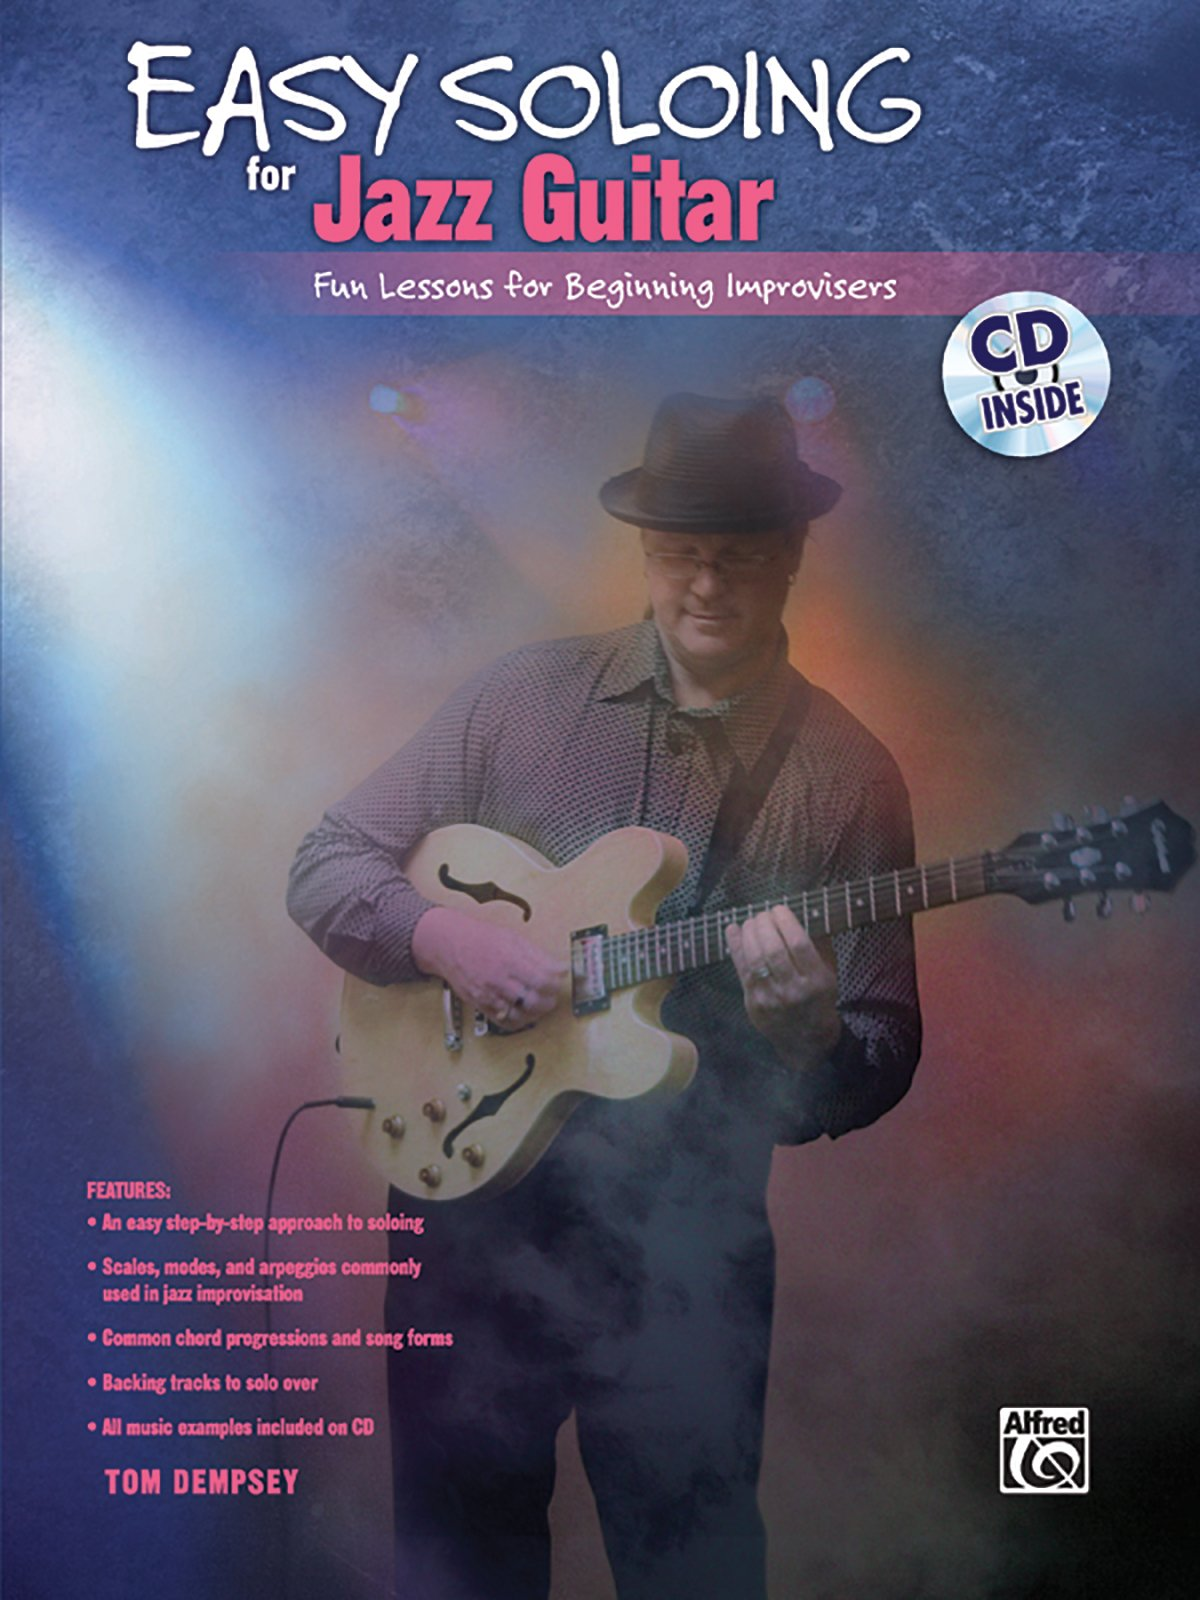 Easy Soloing For Jazz Guitar Fun Lessons For Beginning Improvisers